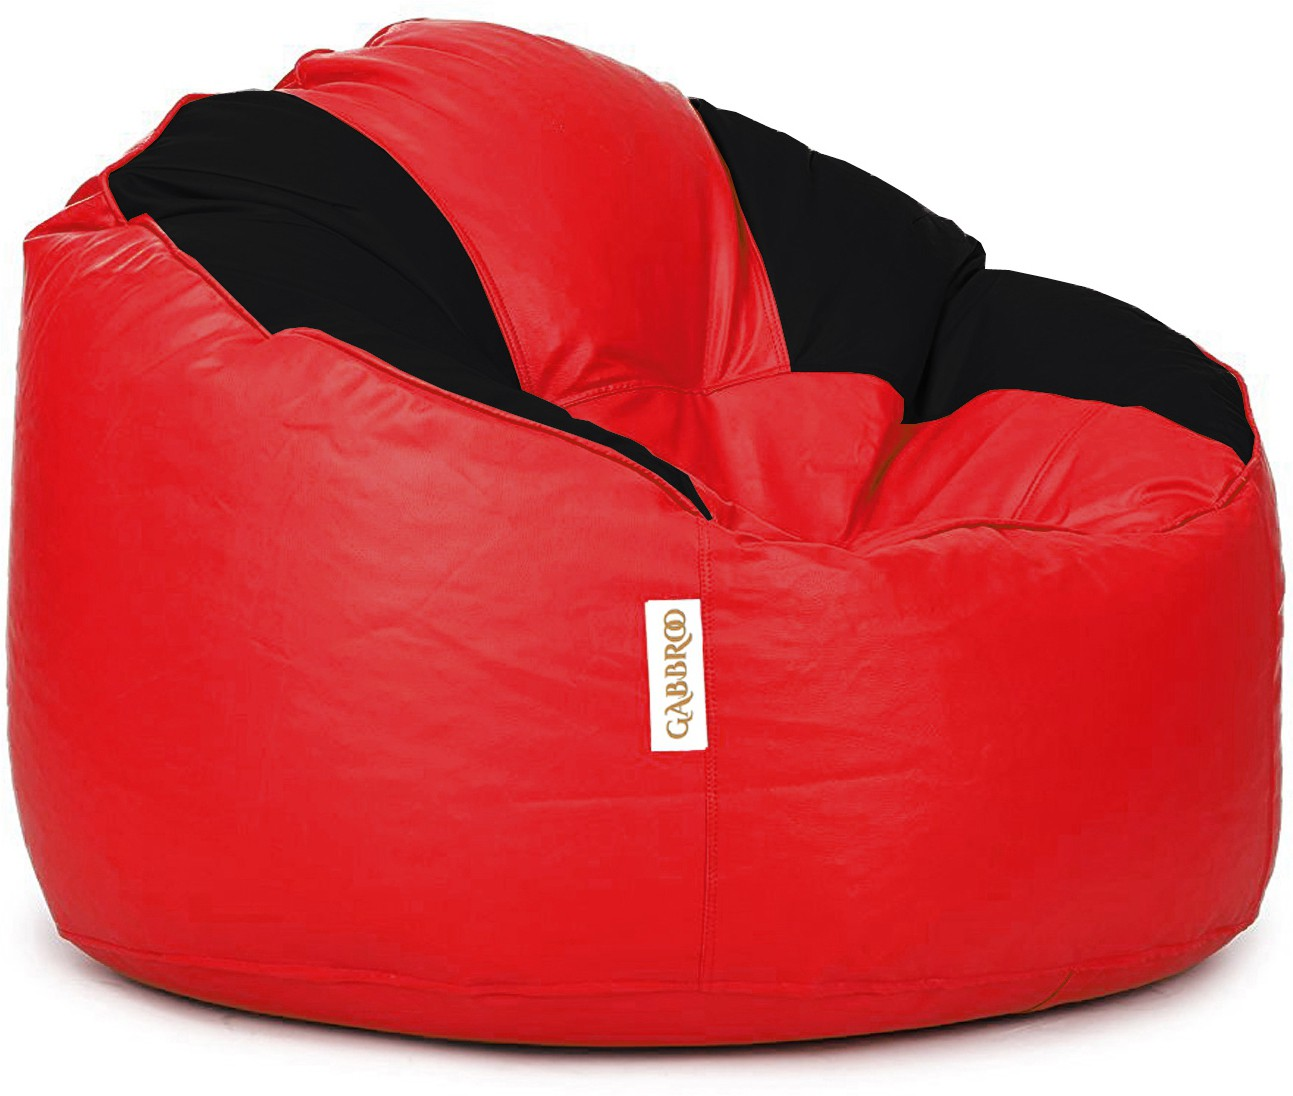 View Gabbroo XXL Lounger Bean Bag Cover(Red, Black) Furniture (StyleCraft)